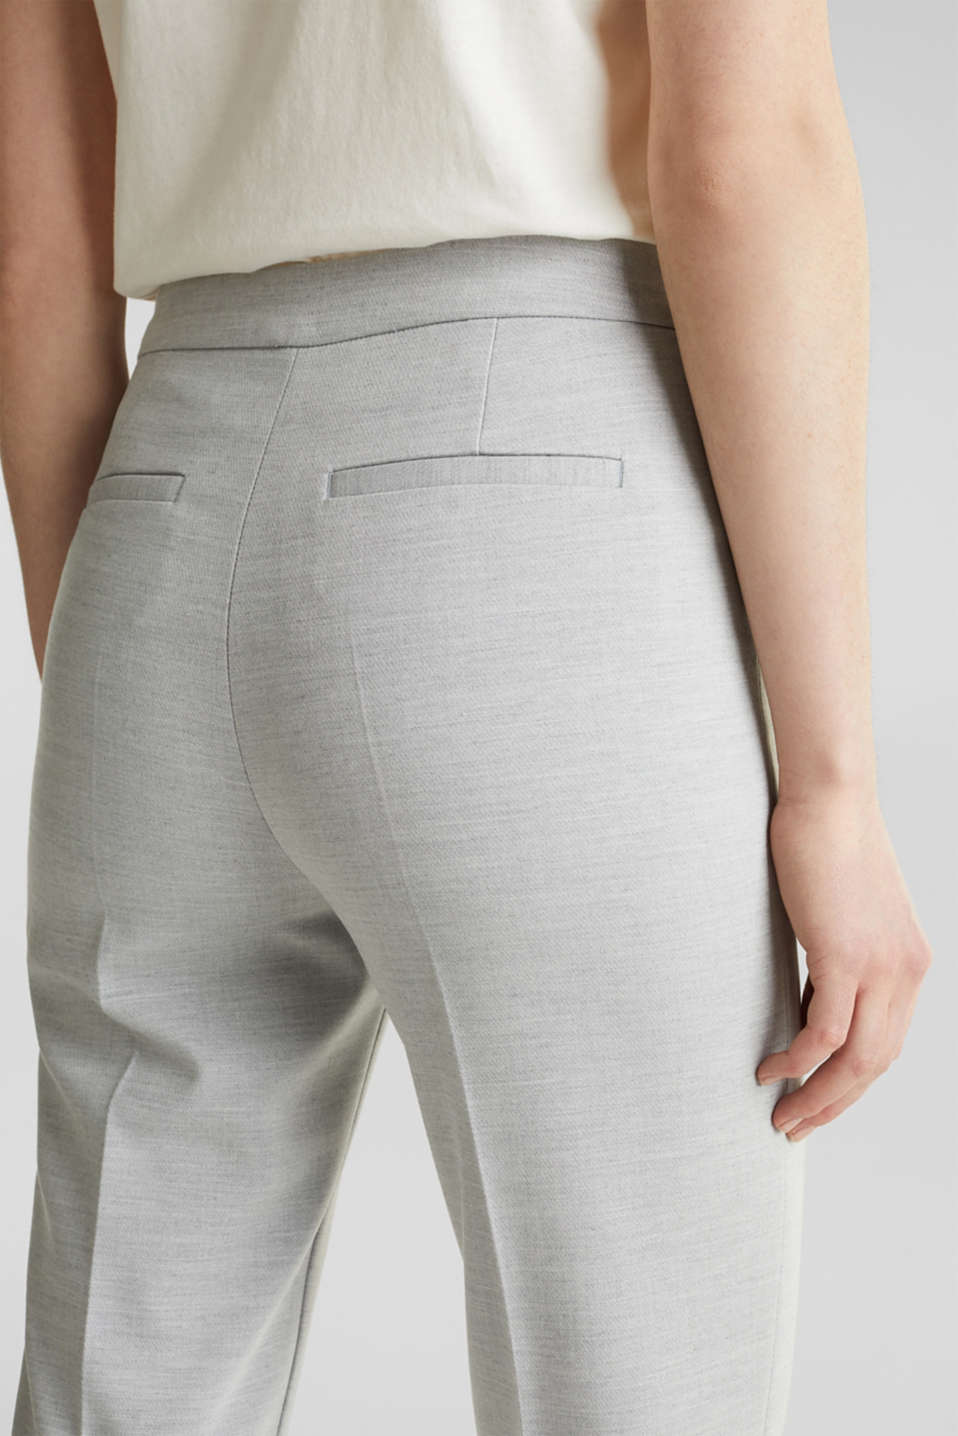 JERSEY mix + match trousers, LIGHT GREY 5, detail image number 2